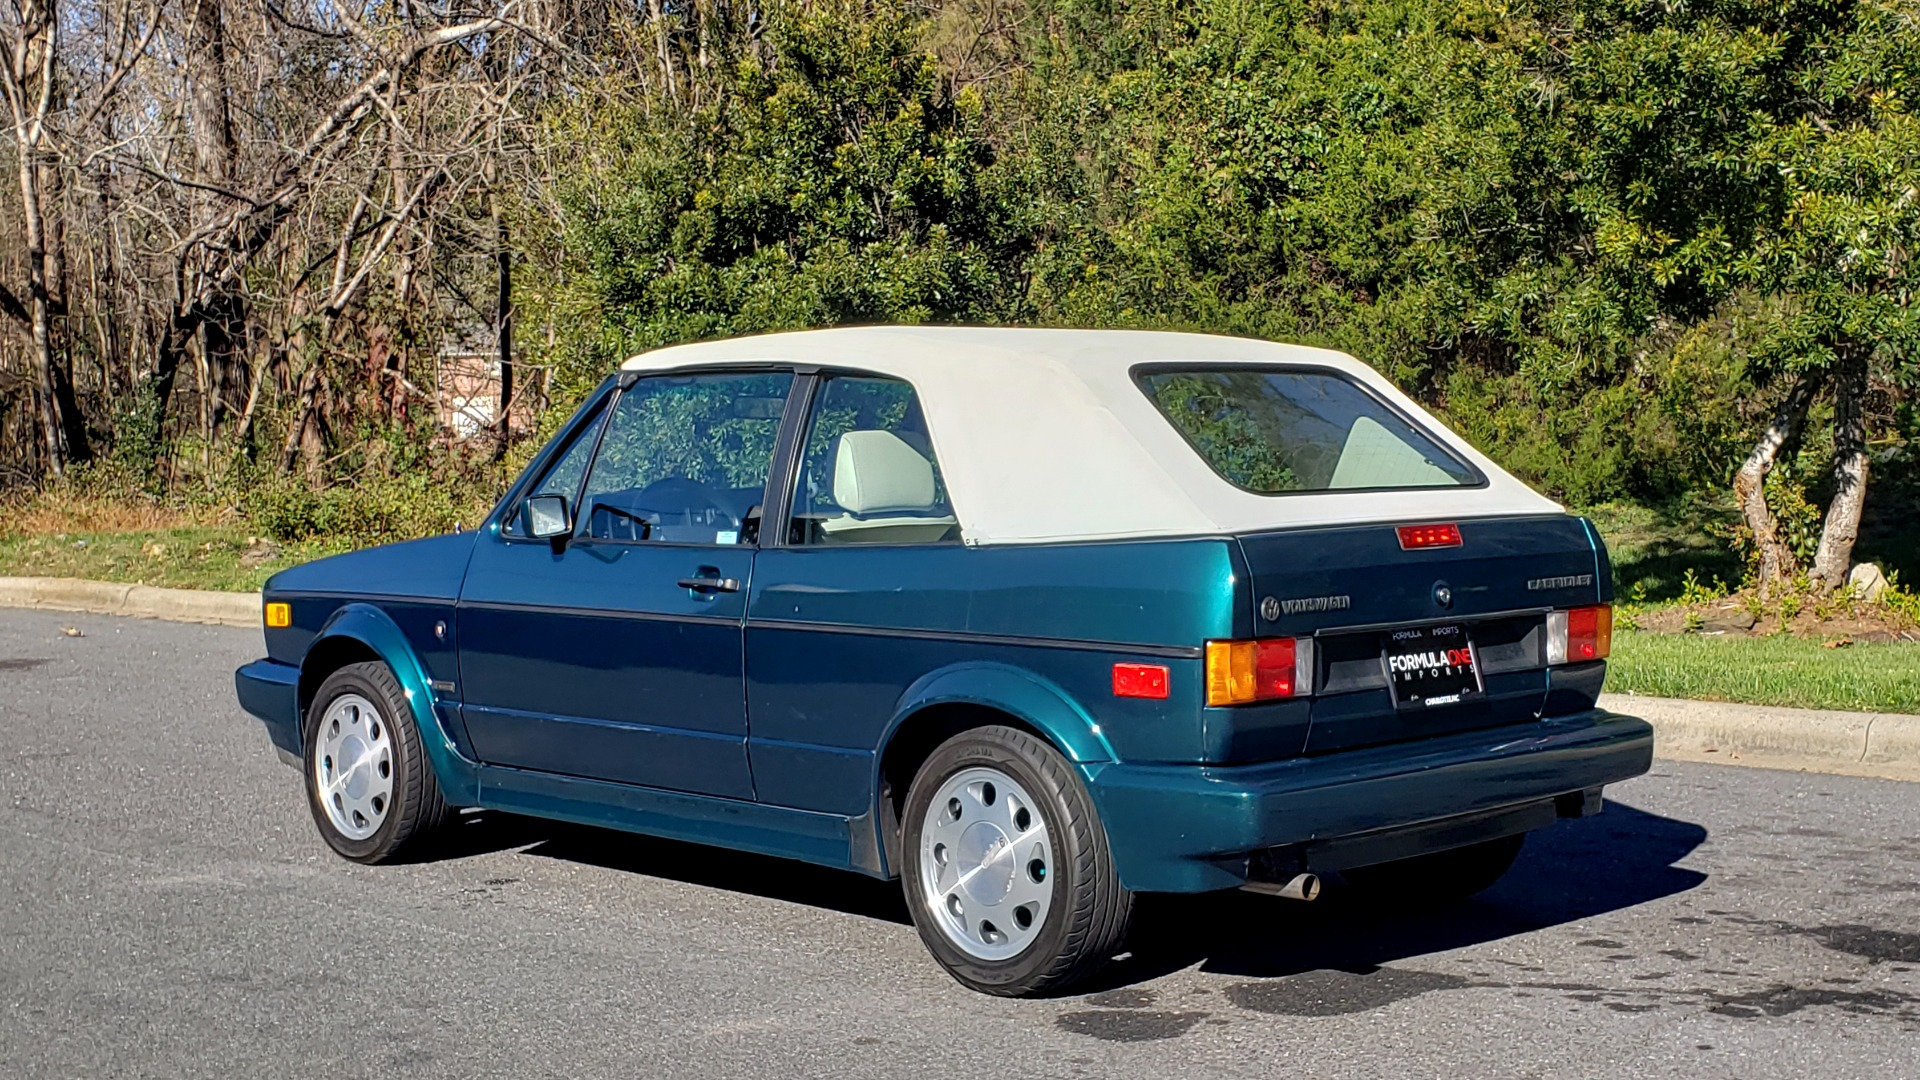 Used 1992 Volkswagen CABRIOLET 5-SPEED MAN / 4-CYL / AIR / 94K MILES / VERY CLEAN for sale Sold at Formula Imports in Charlotte NC 28227 5